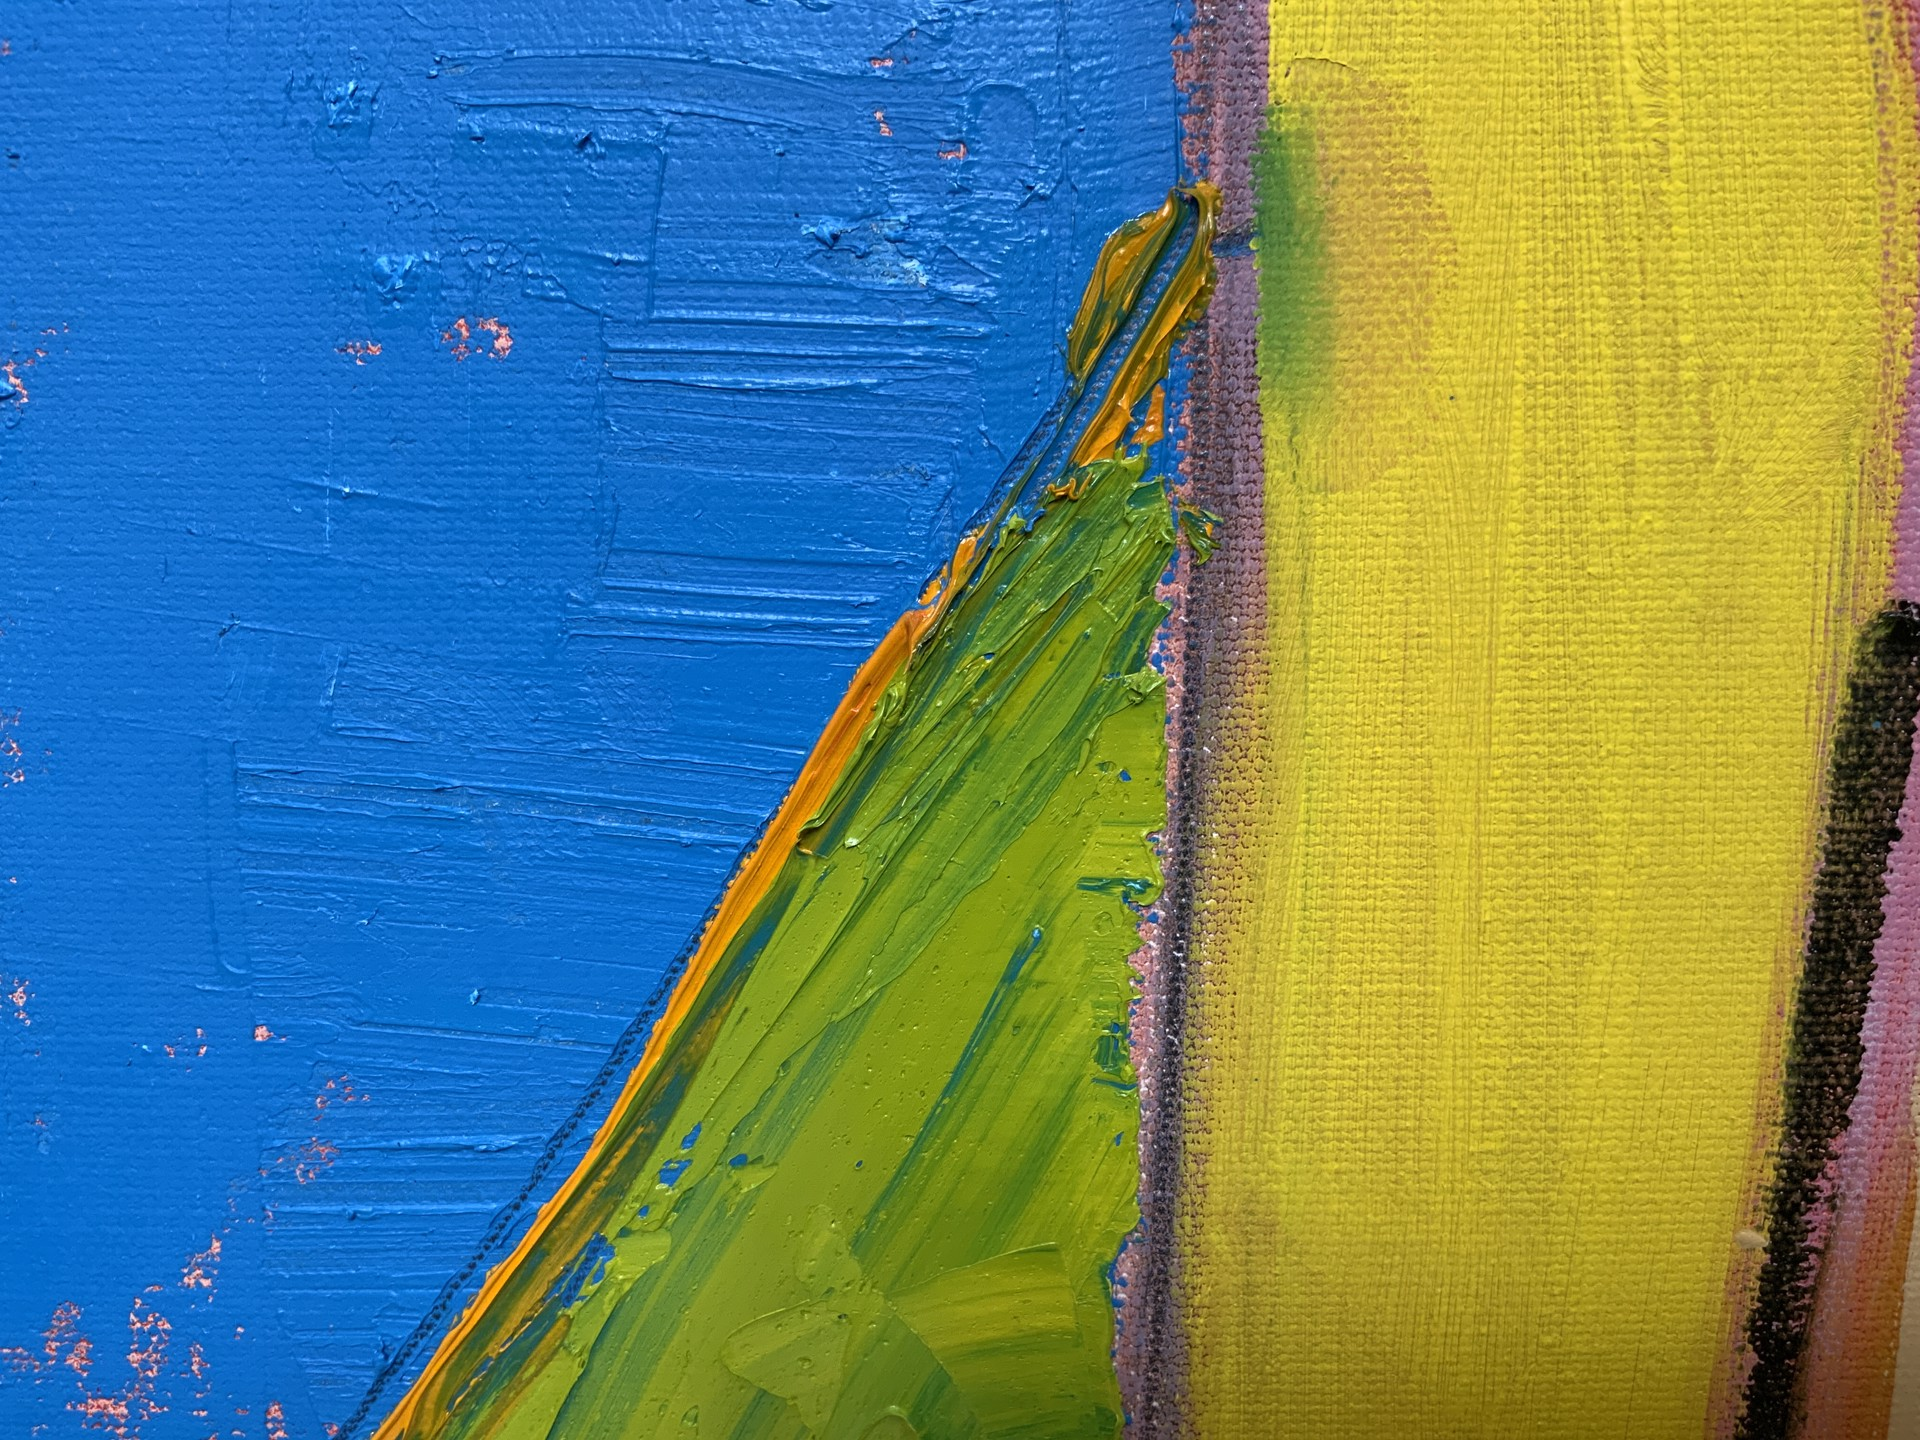 Abstract Landscape from the Air V by Steven Page Prewitt